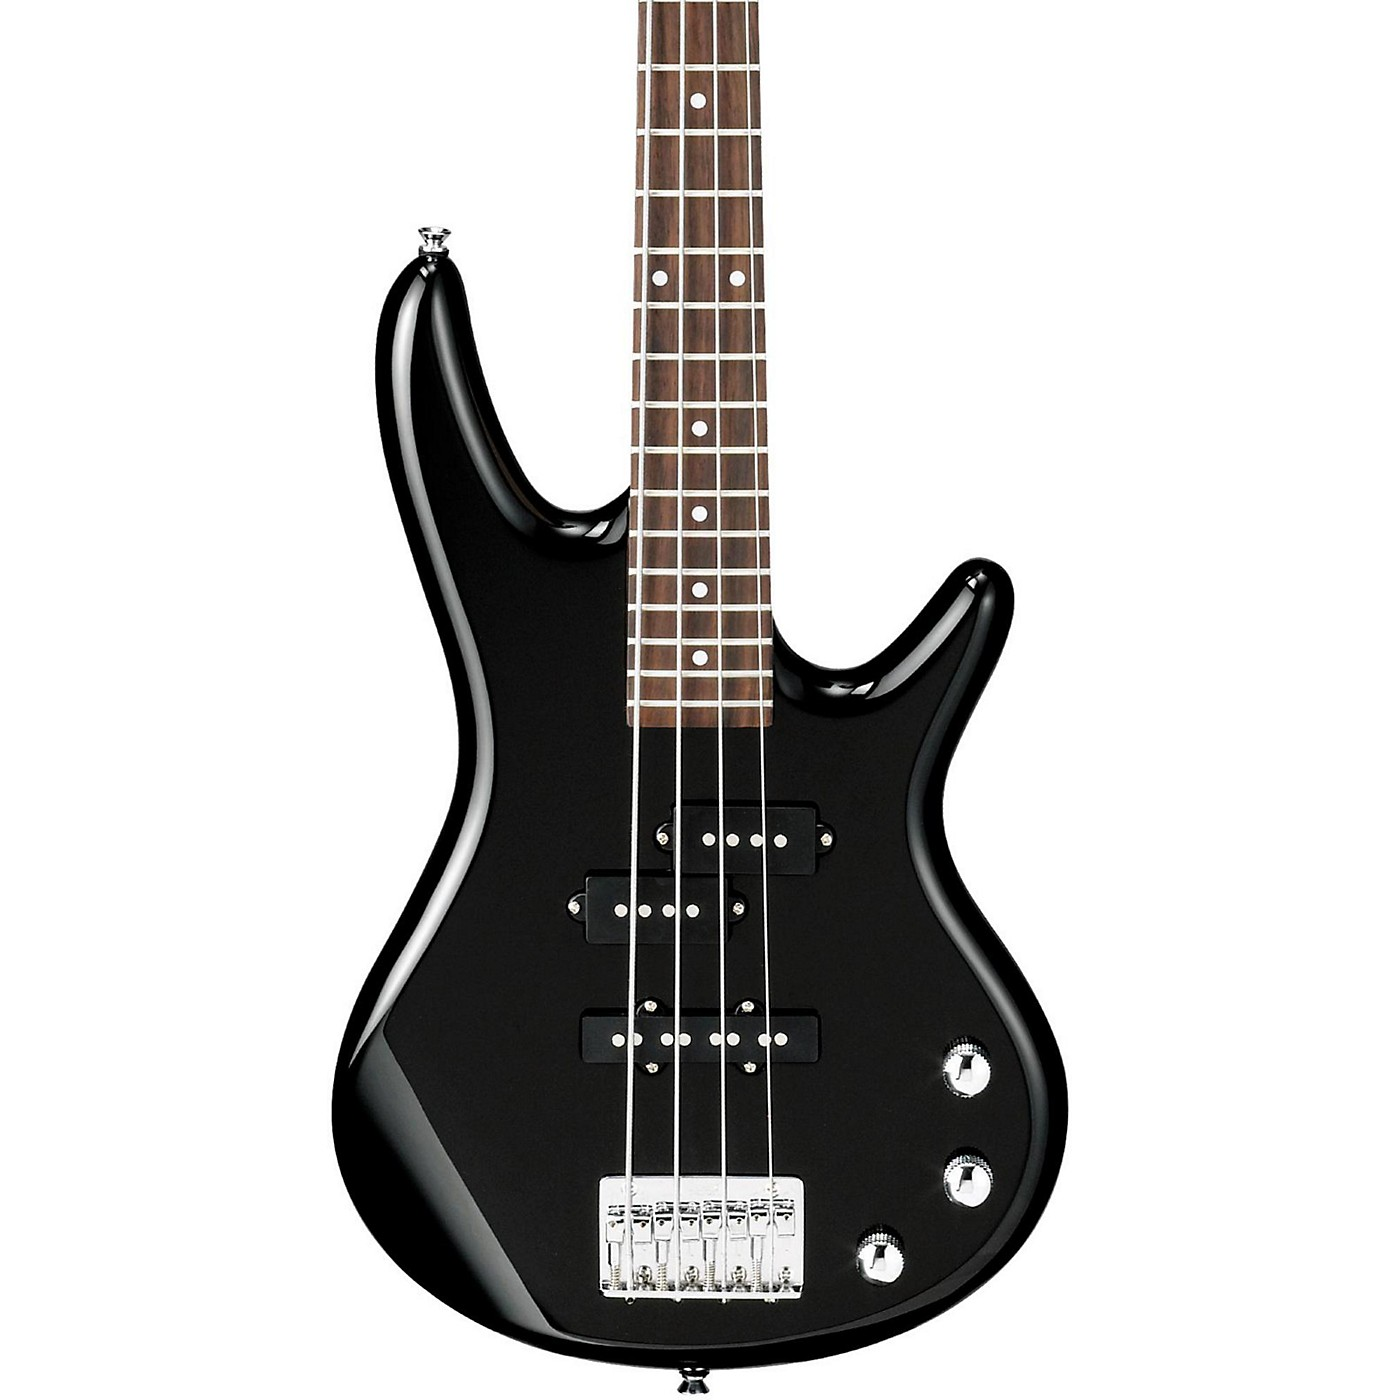 Ibanez GSRM20 Mikro Short-Scale Bass Guitar thumbnail